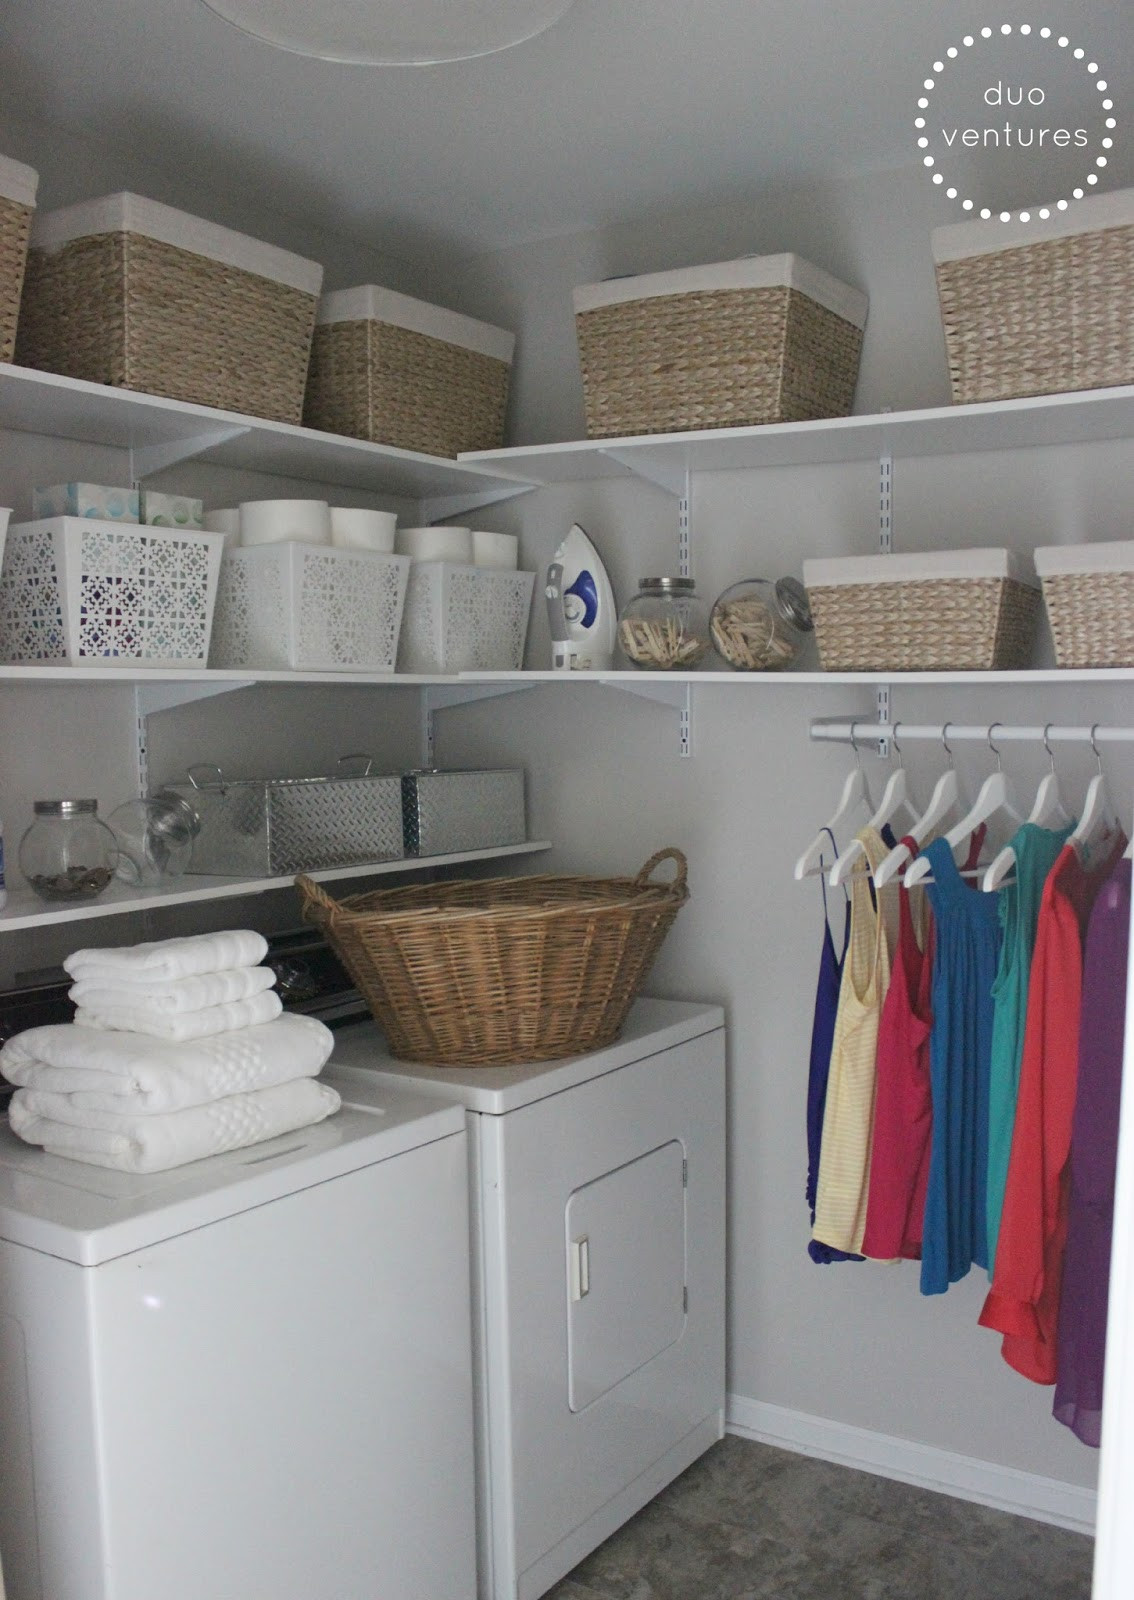 Best ideas about Laundry Room Storage Ideas . Save or Pin Duo Ventures Laundry Room Makeover Now.